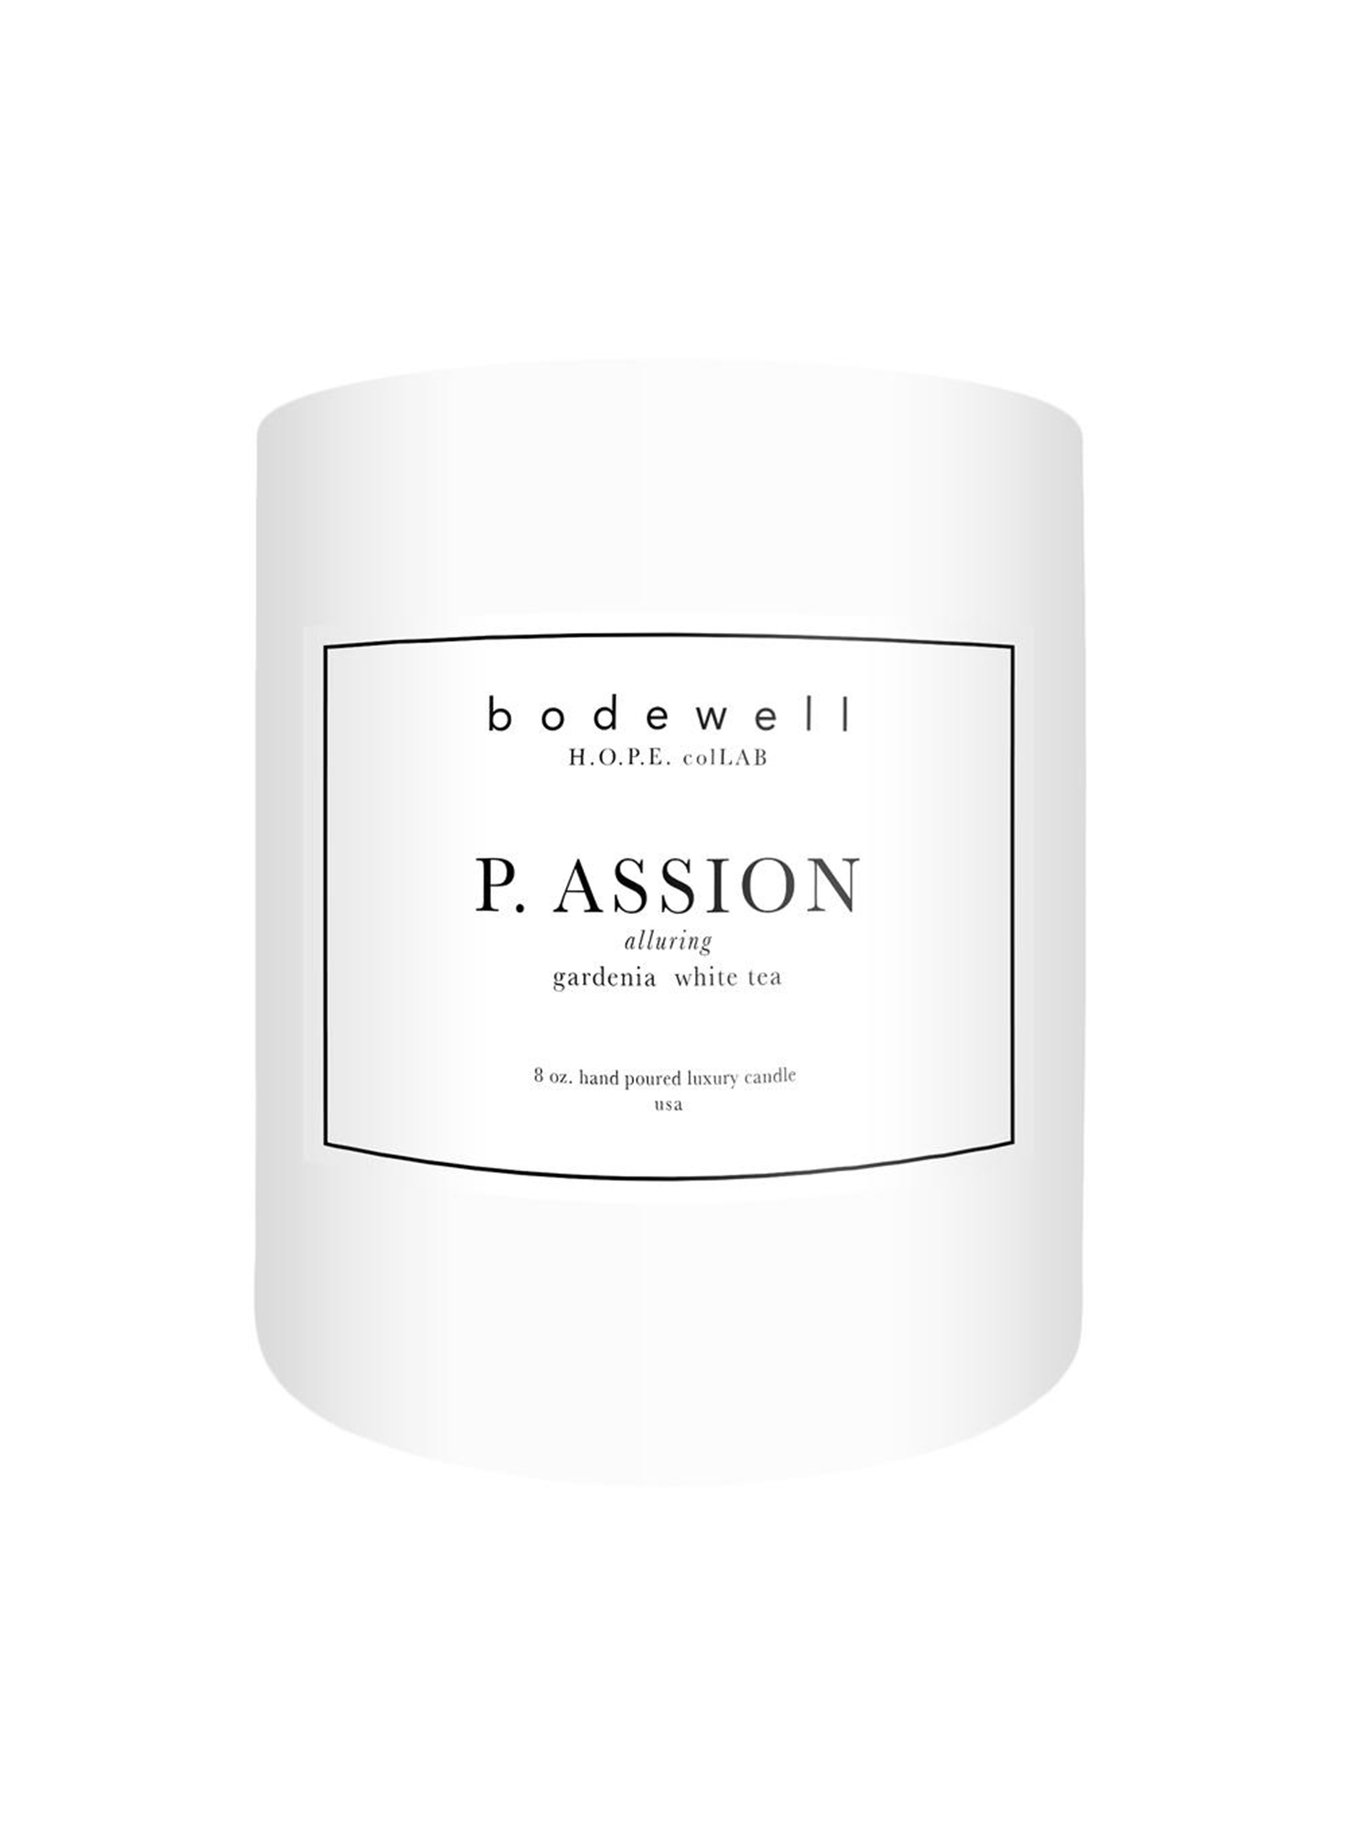 BODWELL H.O.P.E. COLLECTION P.ASSION  $36.00   gardenia, white tea, sandalwood